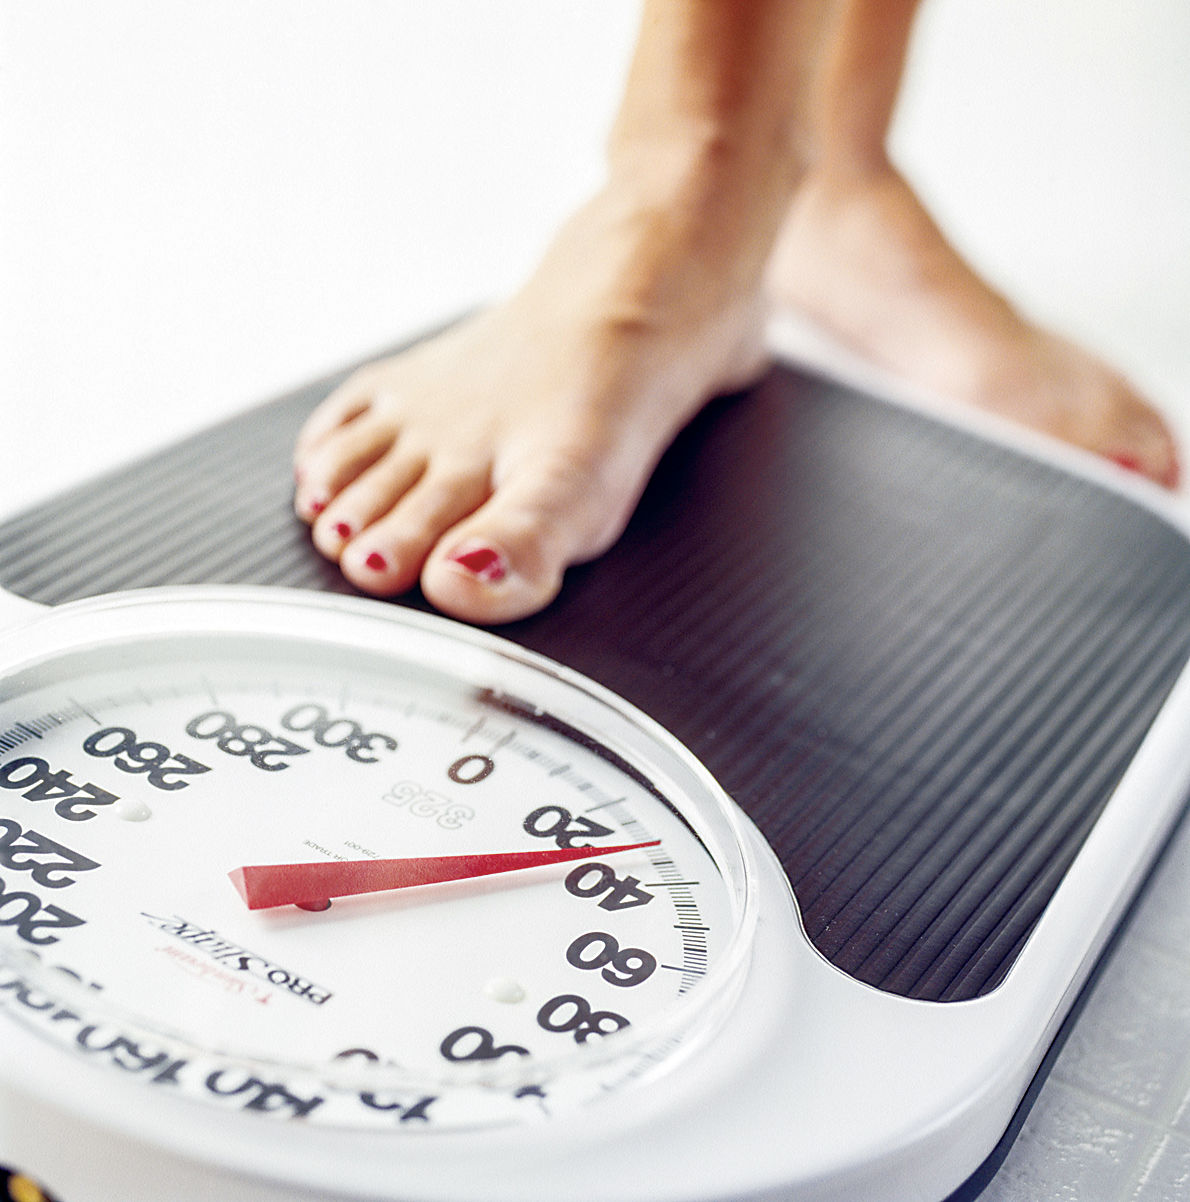 Department of Health says eating disorders among youth on the rise